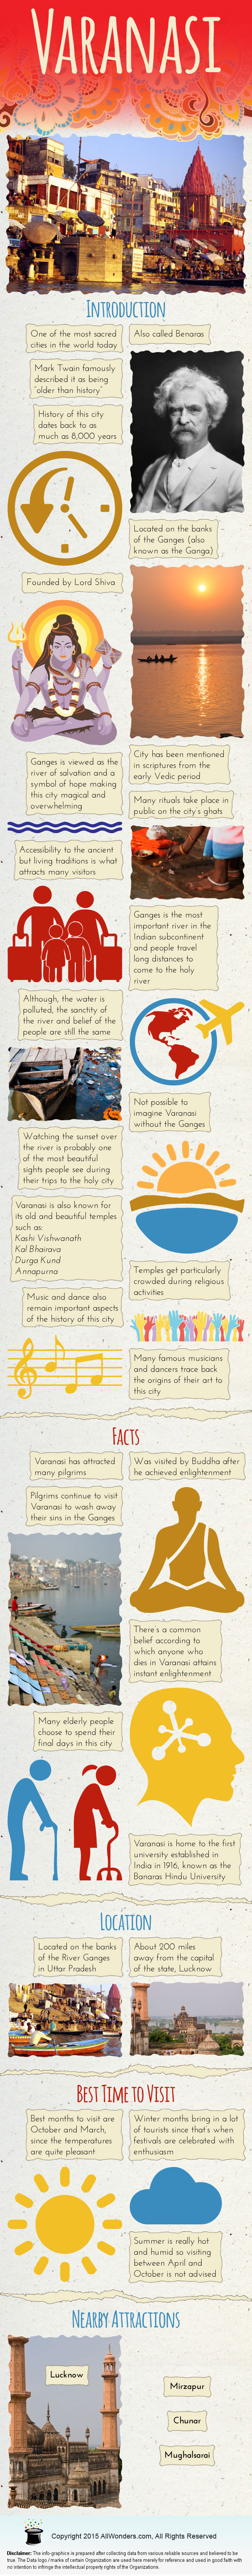 Varanasi - Facts & Infographic